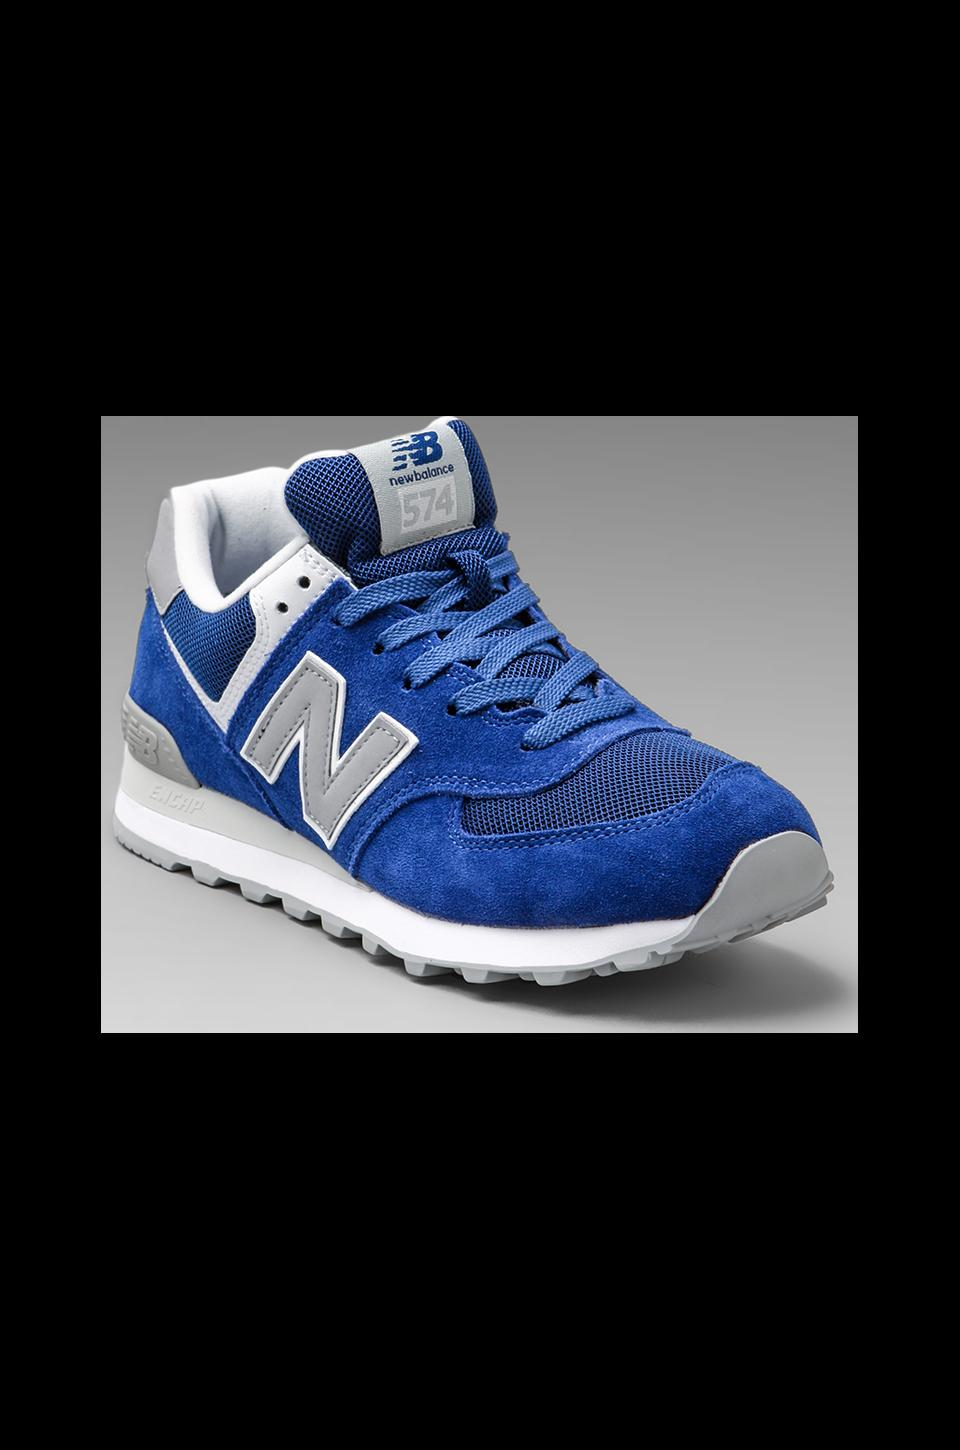 New Balance Classic ML574 in Blue